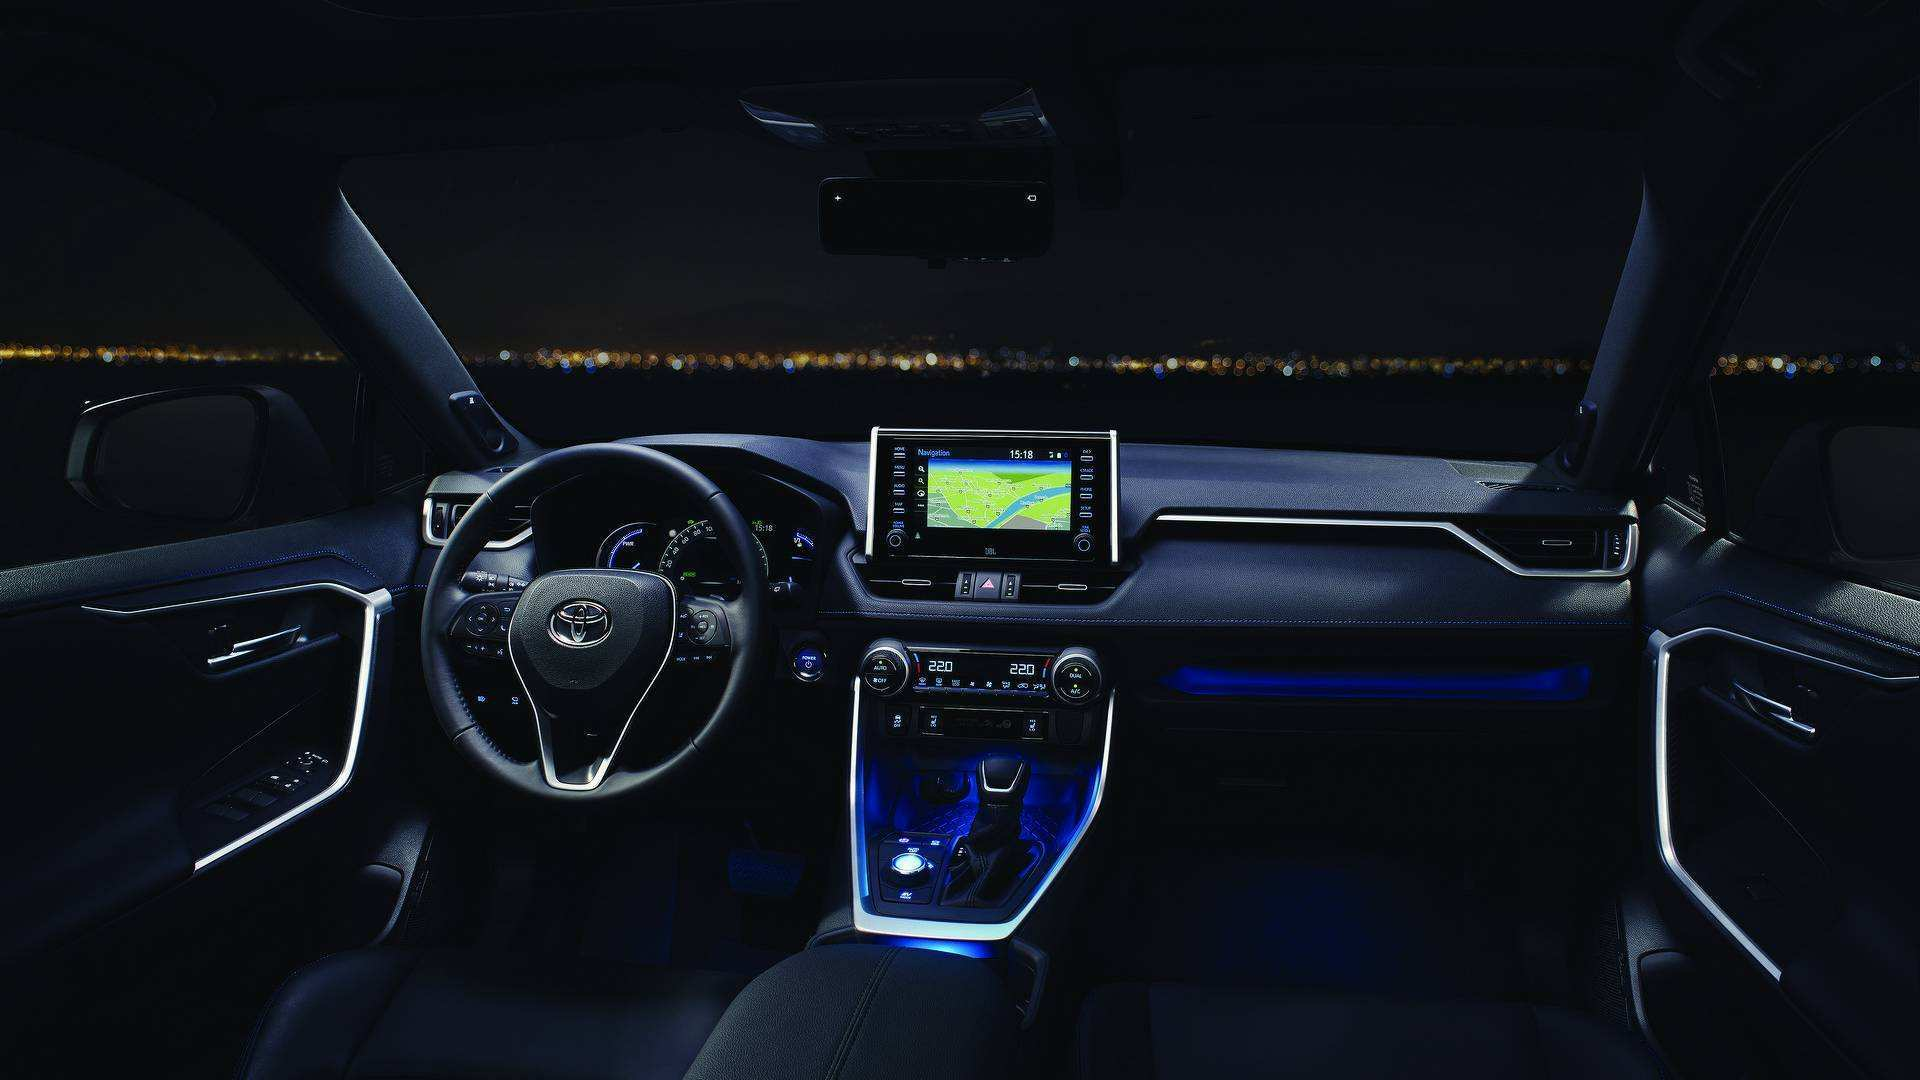 38 The Best Toyota Rav4 2020 Interior Price Design And Review